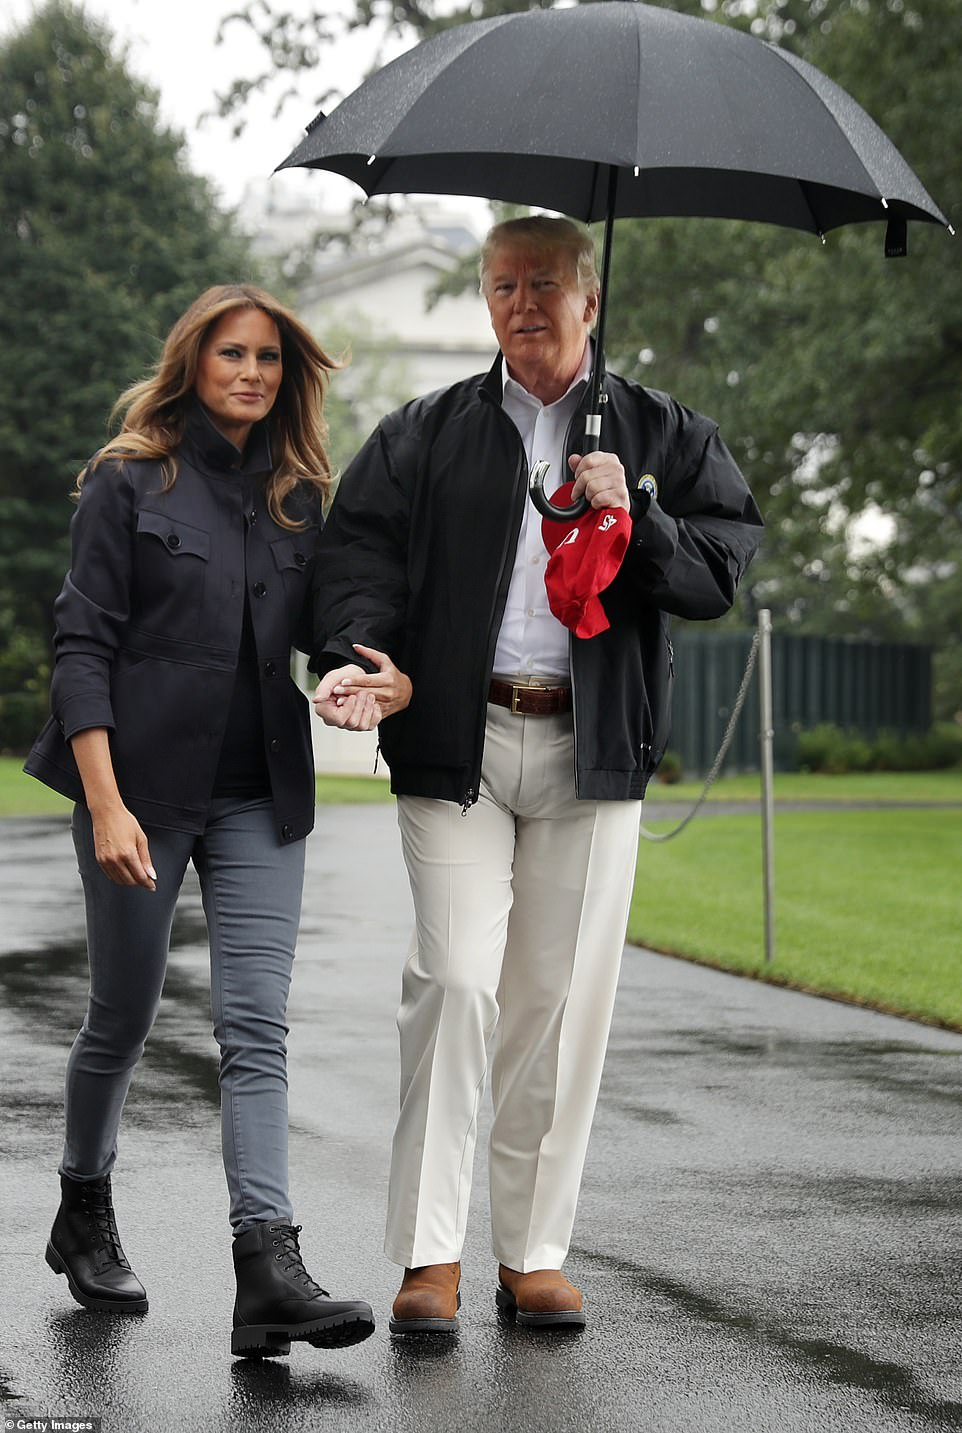 Even when the couple were together, the umbrella was nowhere near Melania who was left soaking as the rain came down